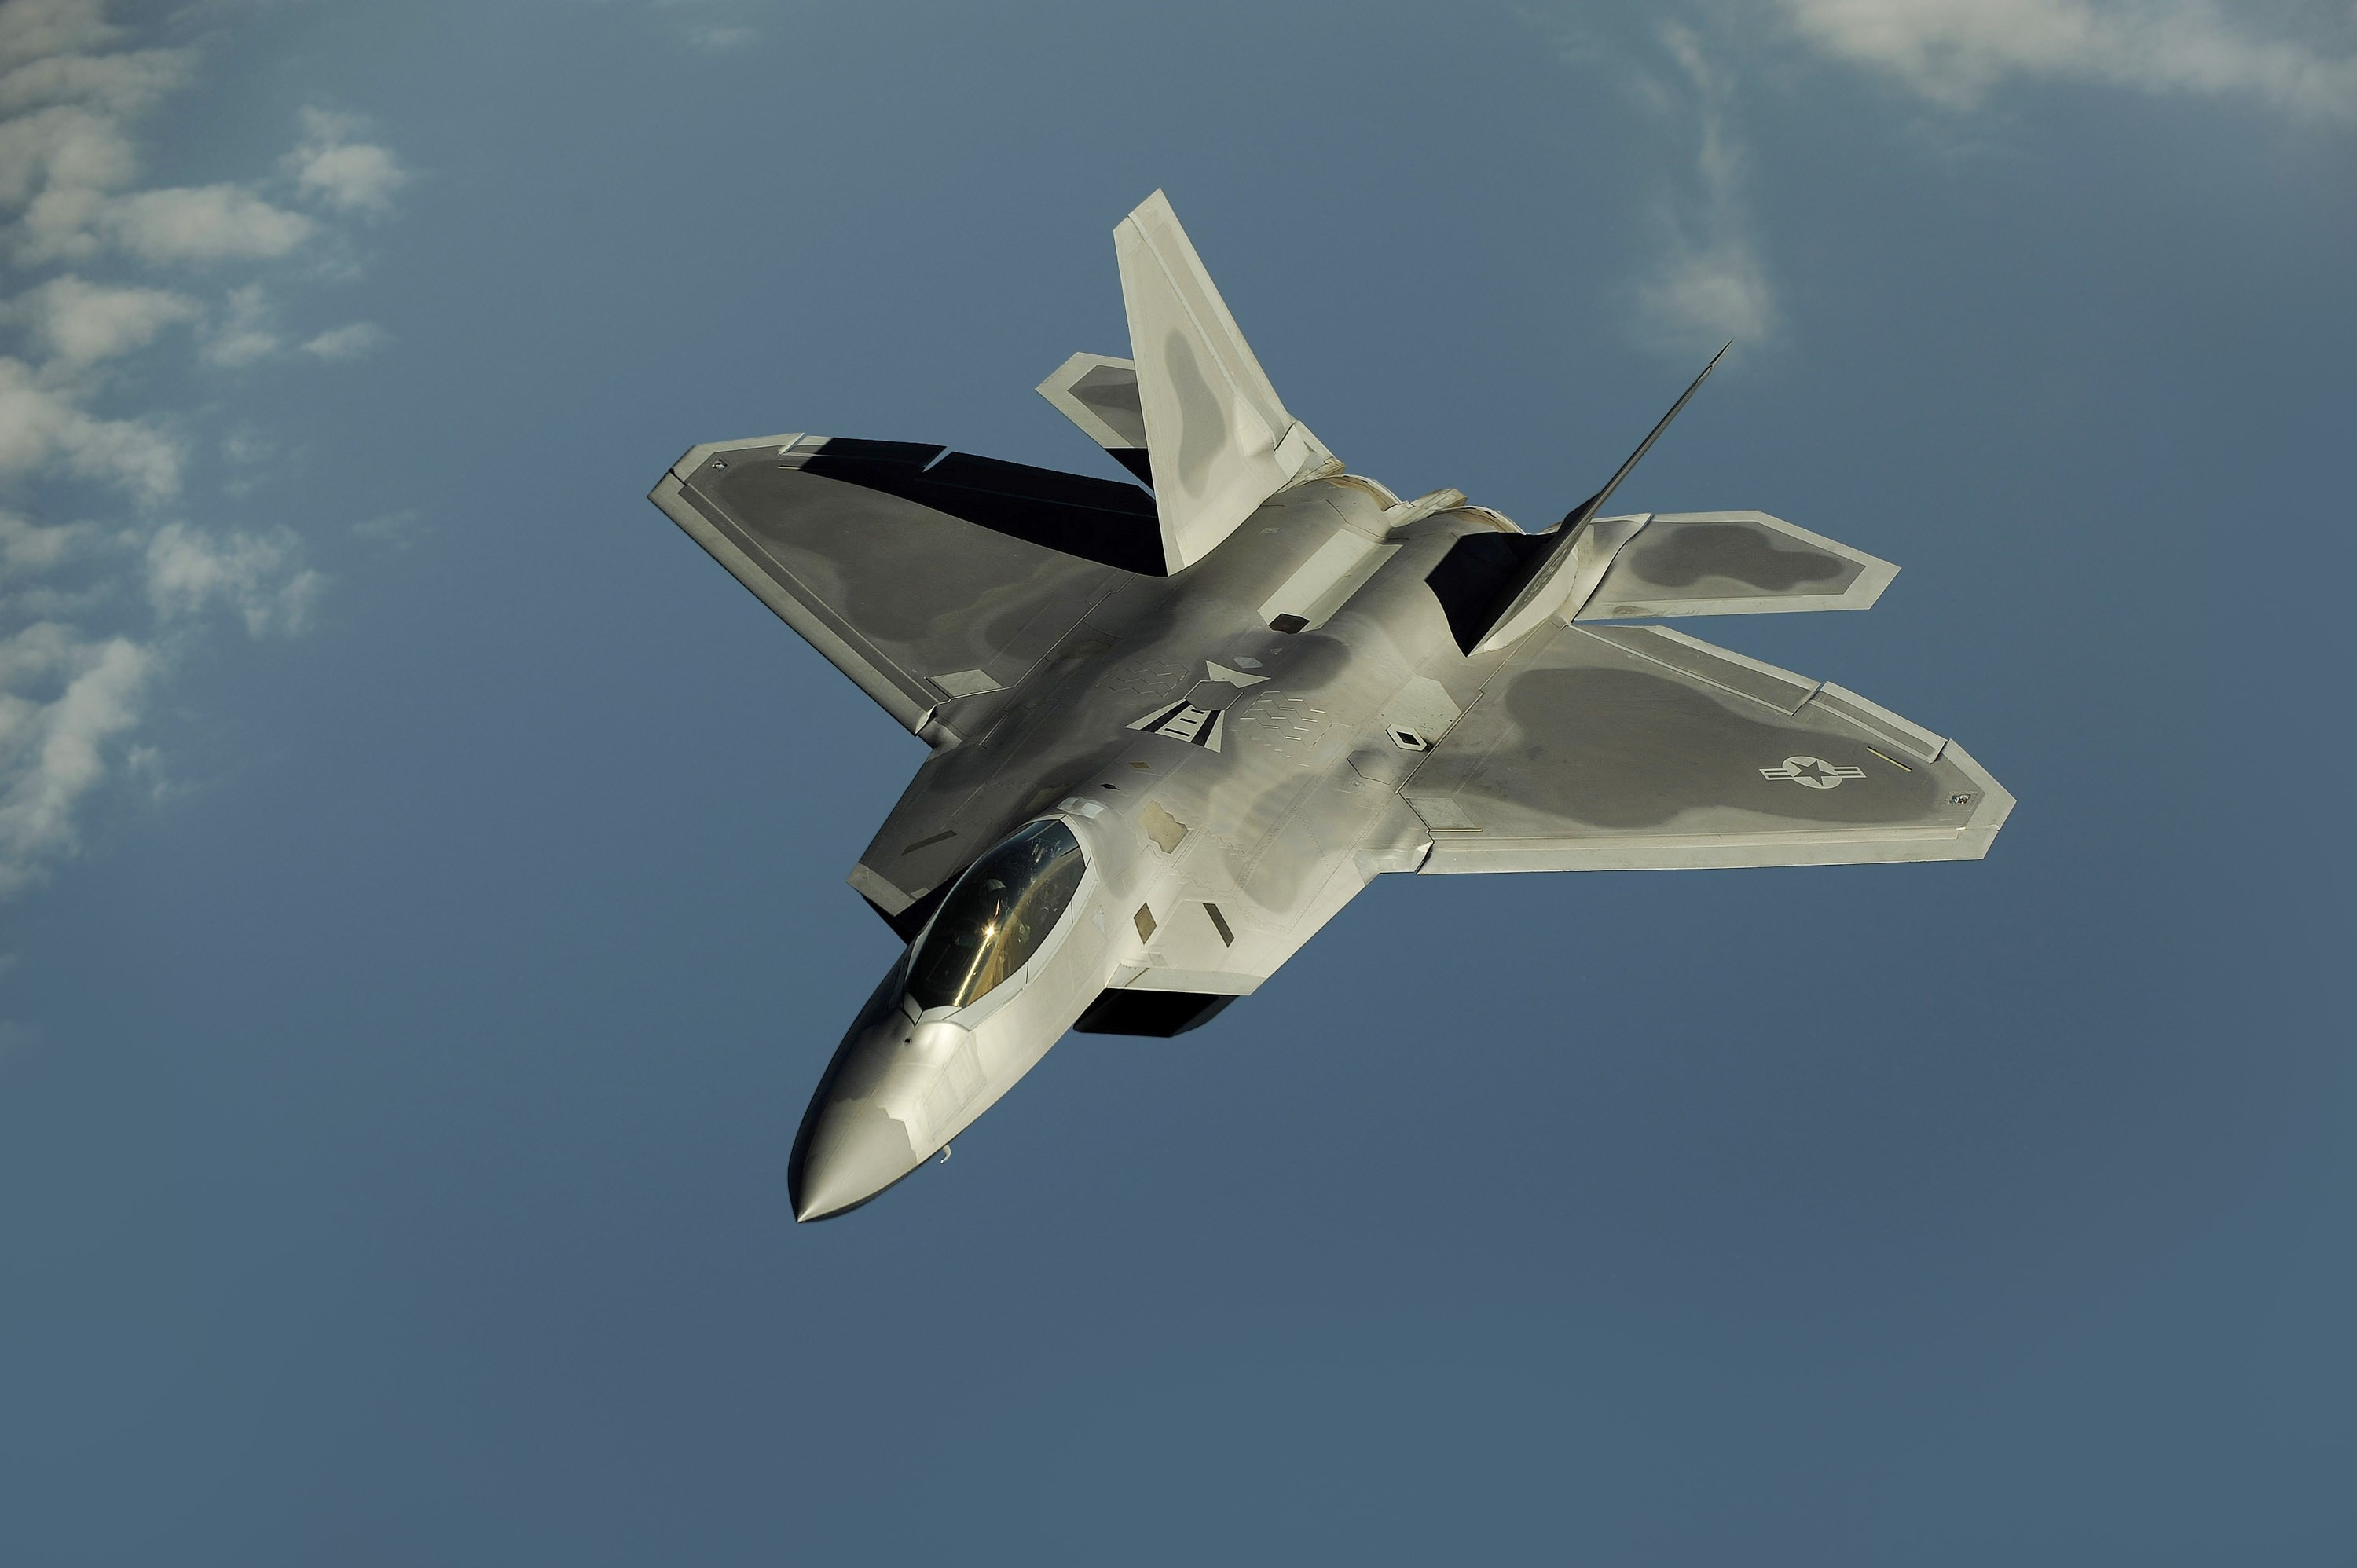 3000x1996 Free desktop lockheed martin f 22 raptor wallpaper - lockheed martin f 22  raptor category